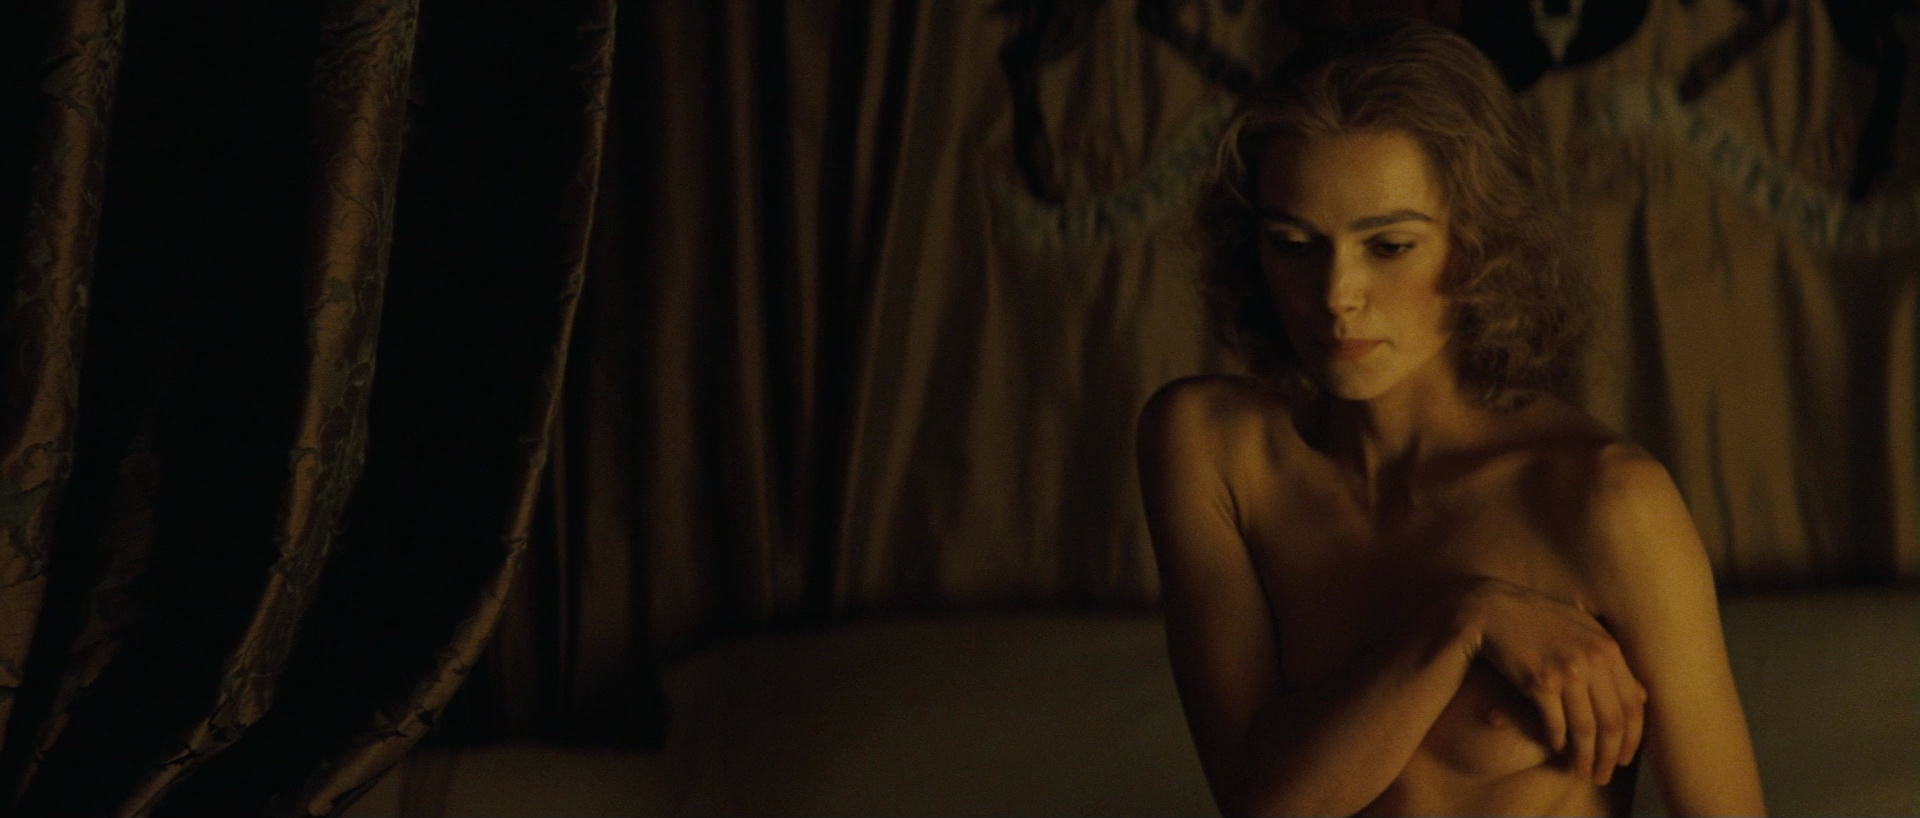 Apologise, but, keira knightley naked lesbian